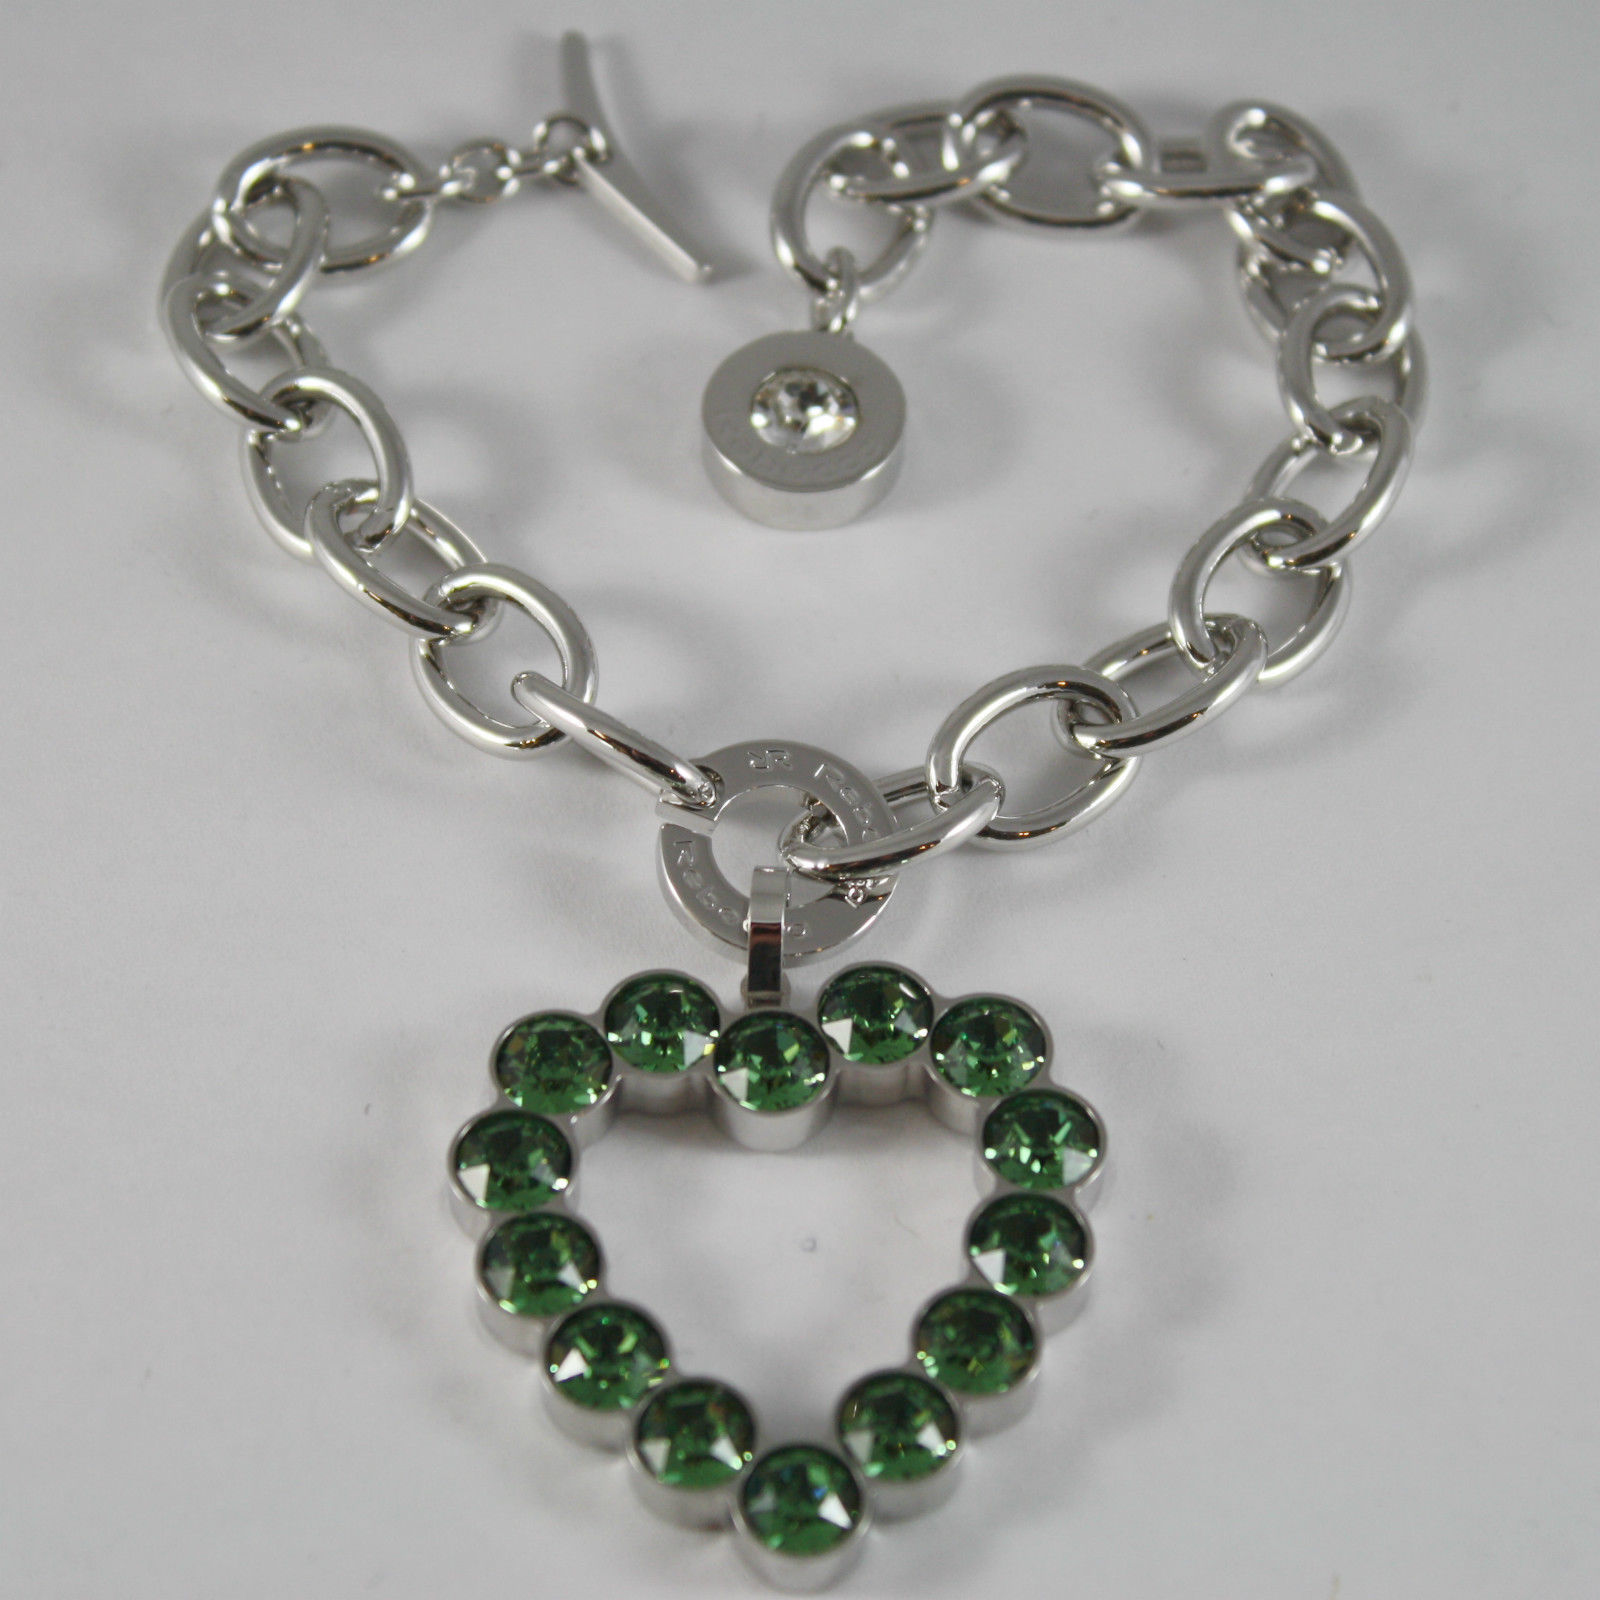 RHODIUM BRONZE REBECCA BRACELET BIG HEART WITH GREEN CRYSTAL CT 15 MADE IN ITAL